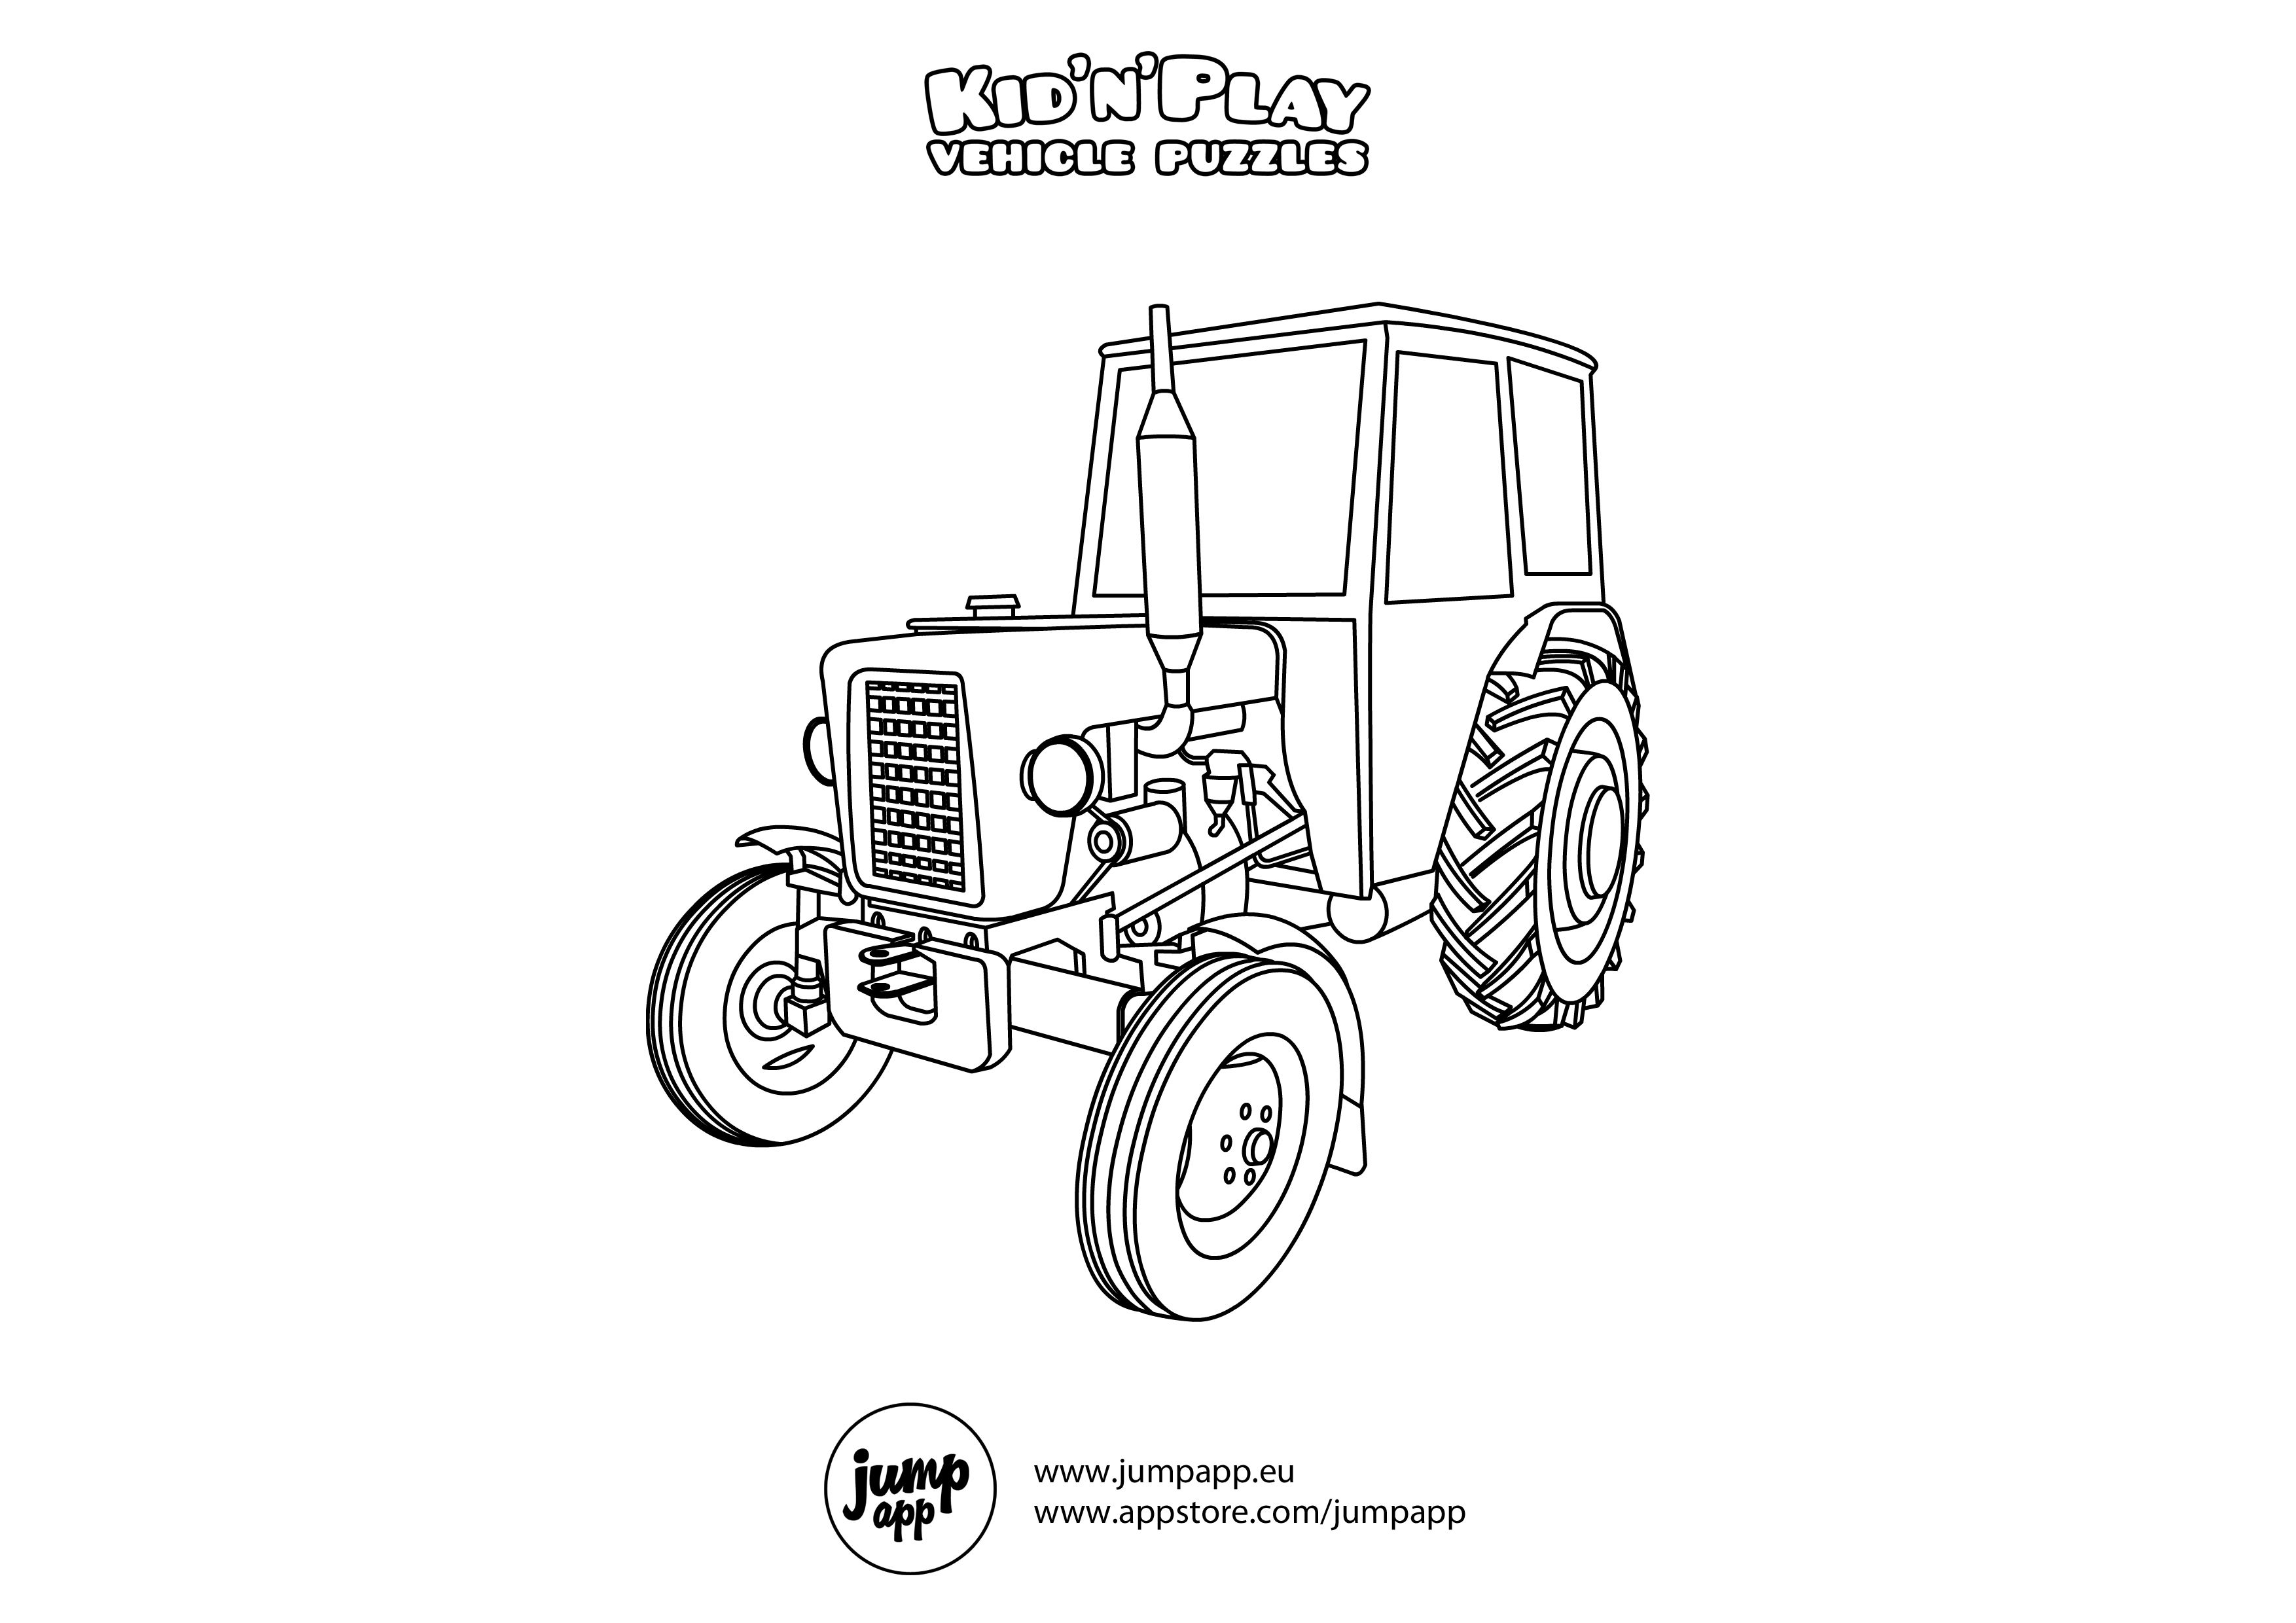 truck and tractor coloring pages tractor trailer semi truck coloring page tractor trailer truck and coloring pages tractor